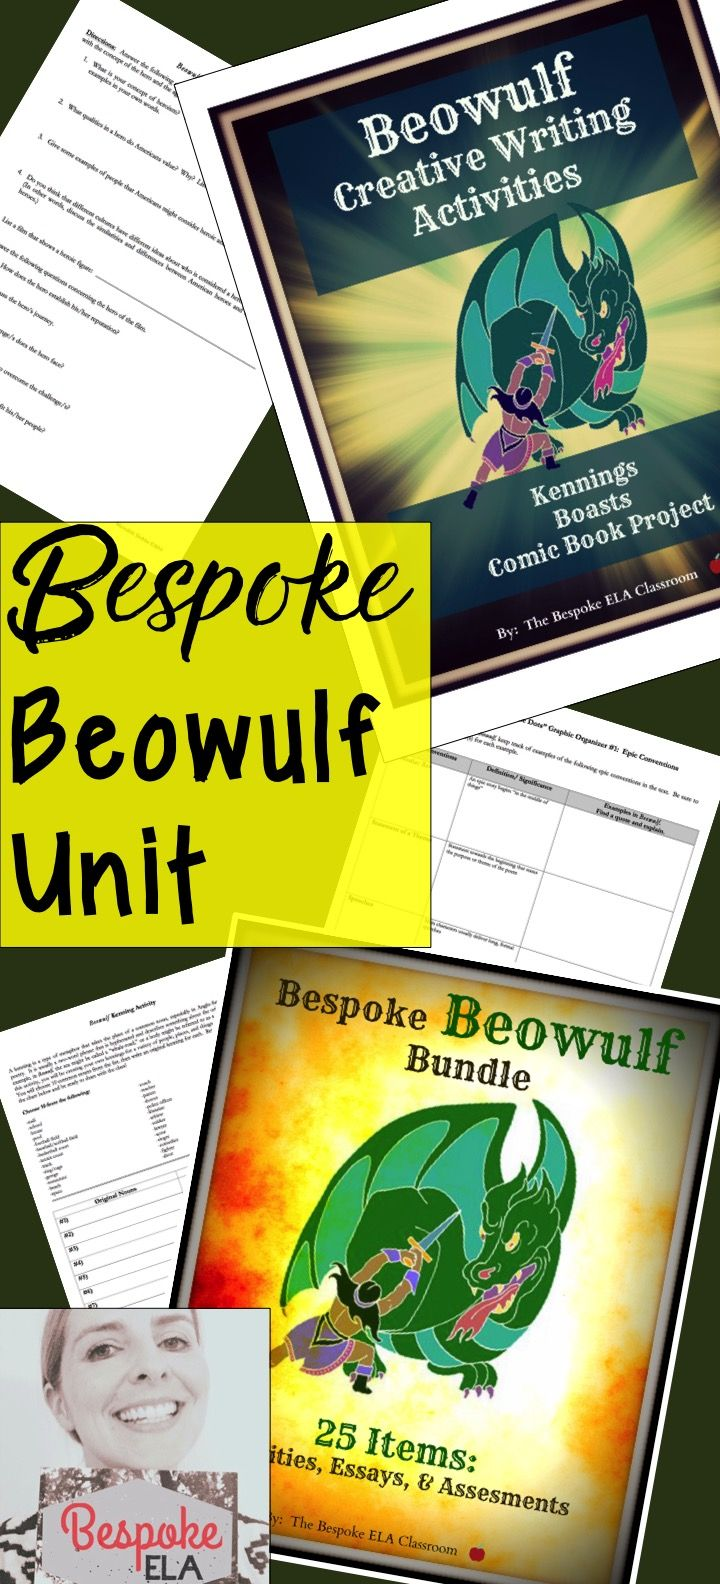 best ideas about sample essay argumentative in this mega beowulf bundle by bespoke ela you will 25 lessons and activities